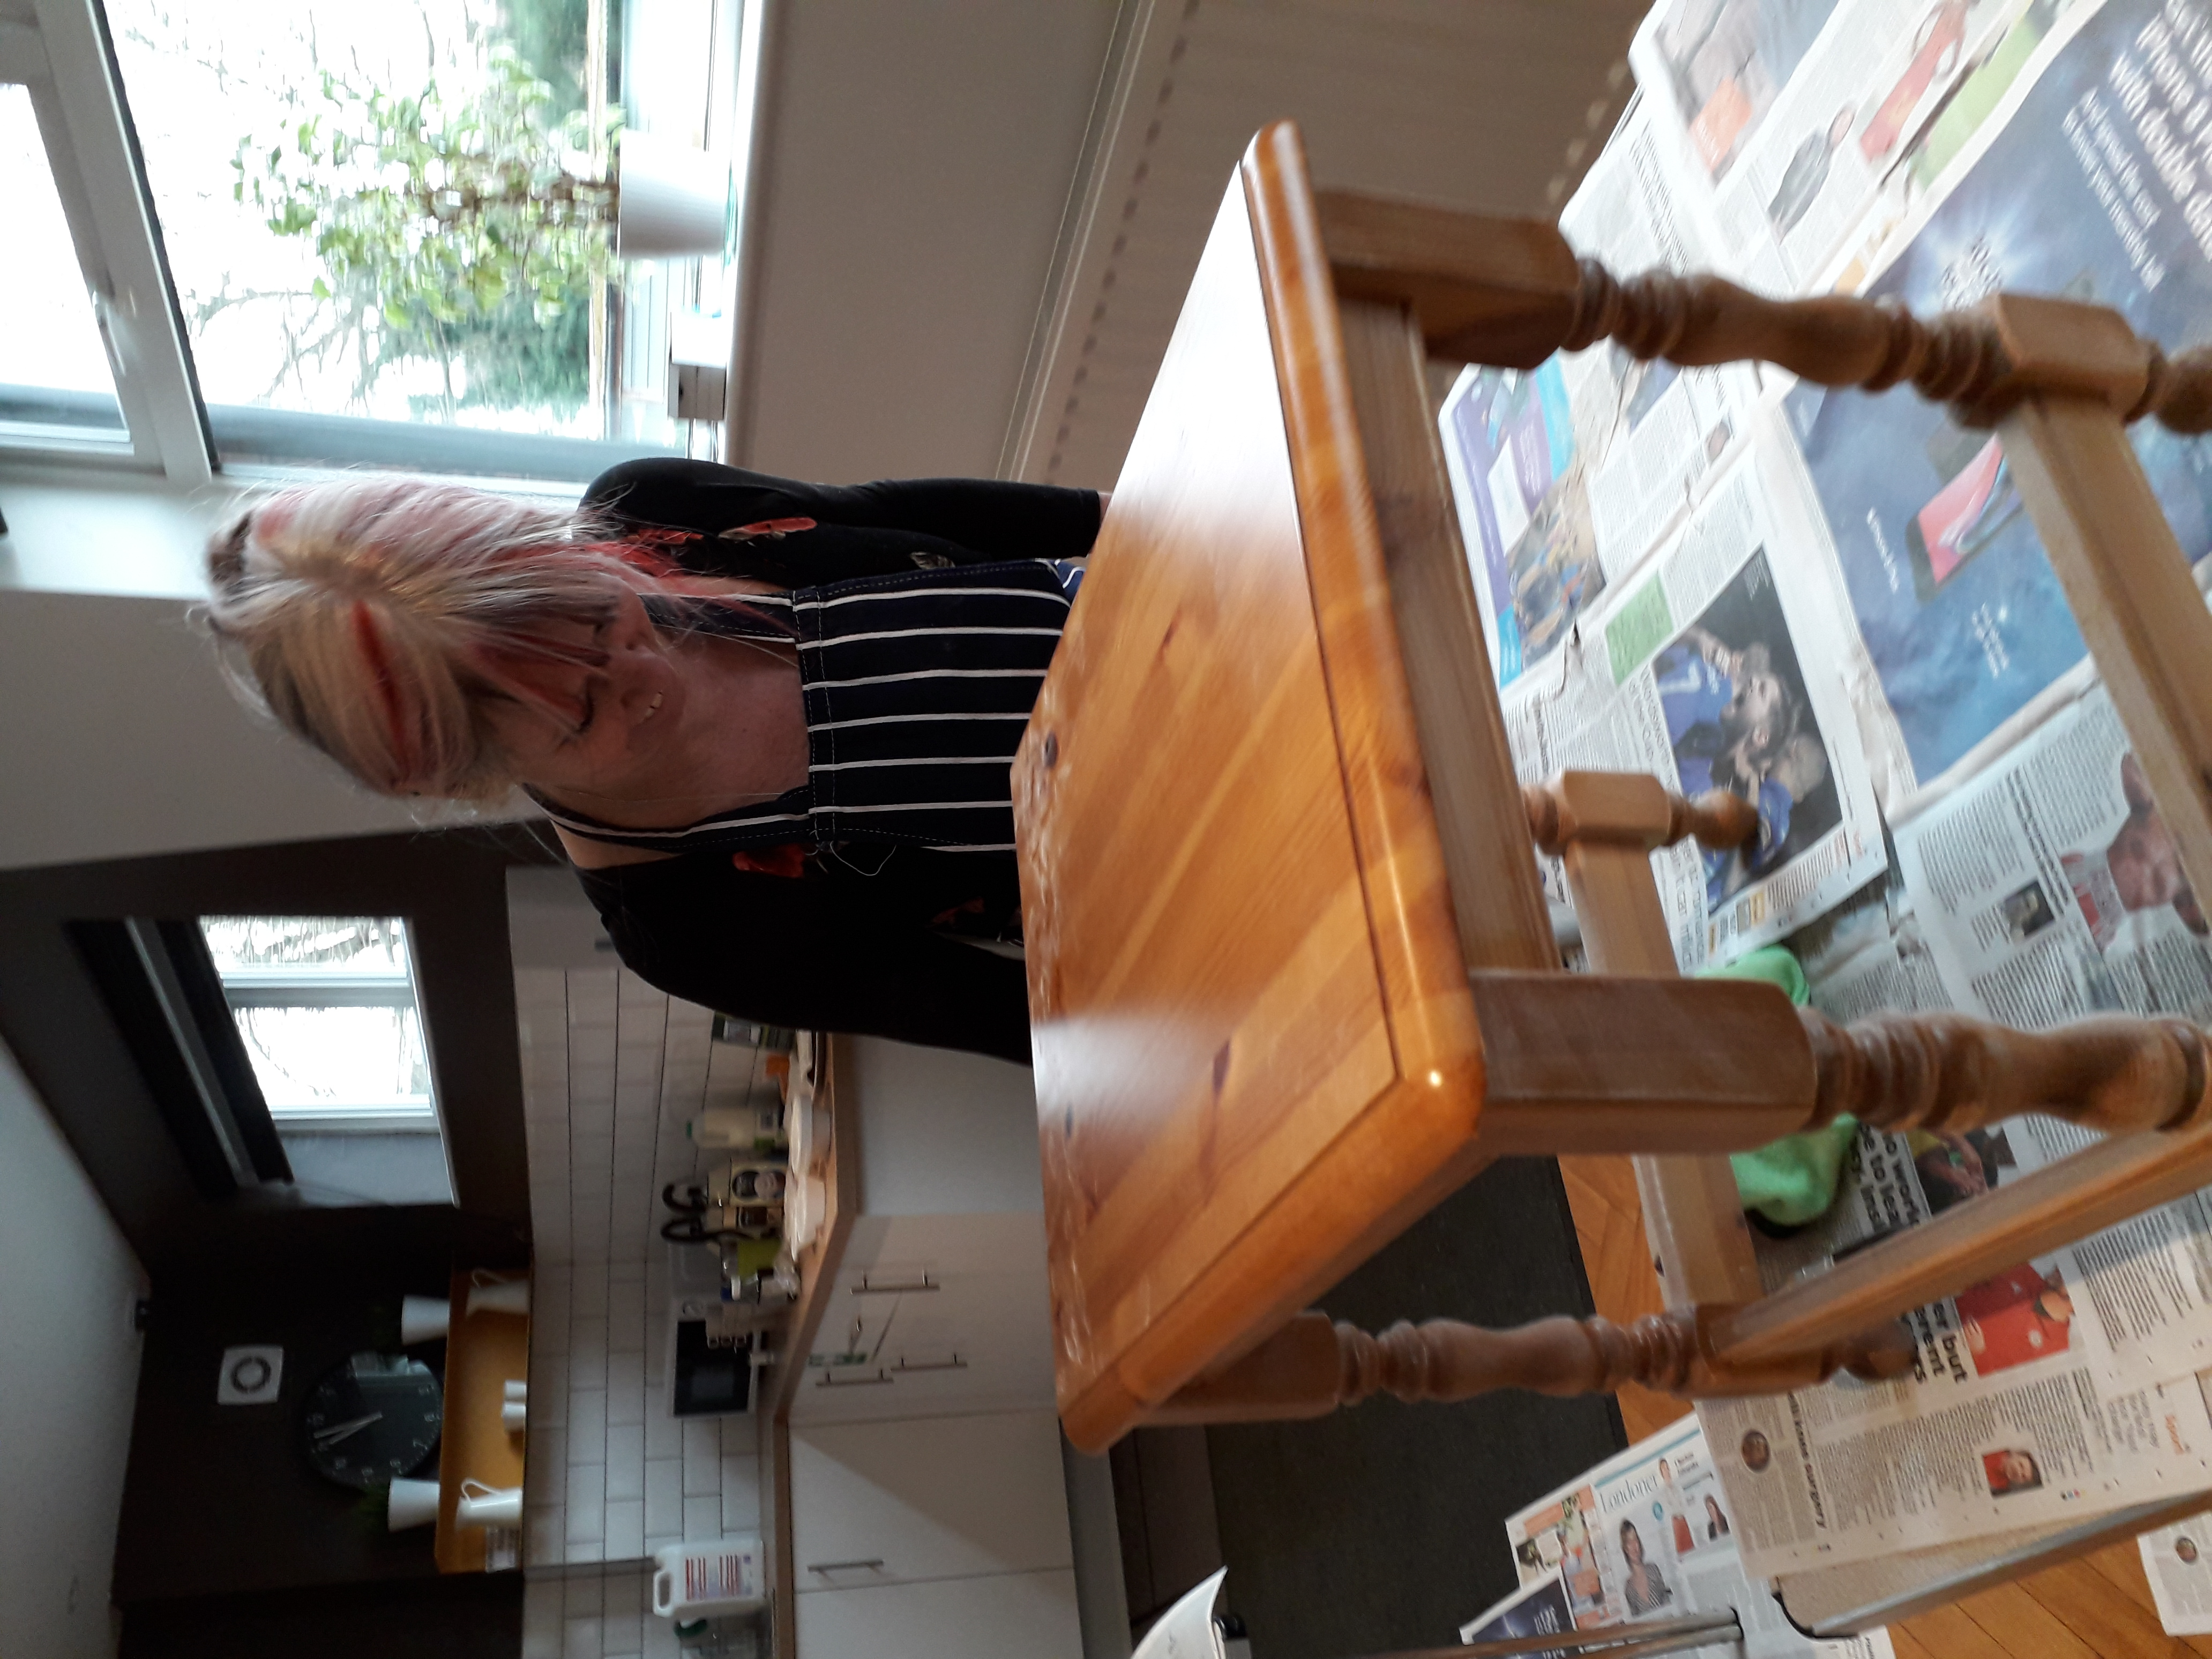 Upcycling Furniture Workshop by Touch Wood Vintage Designs - crafts in London